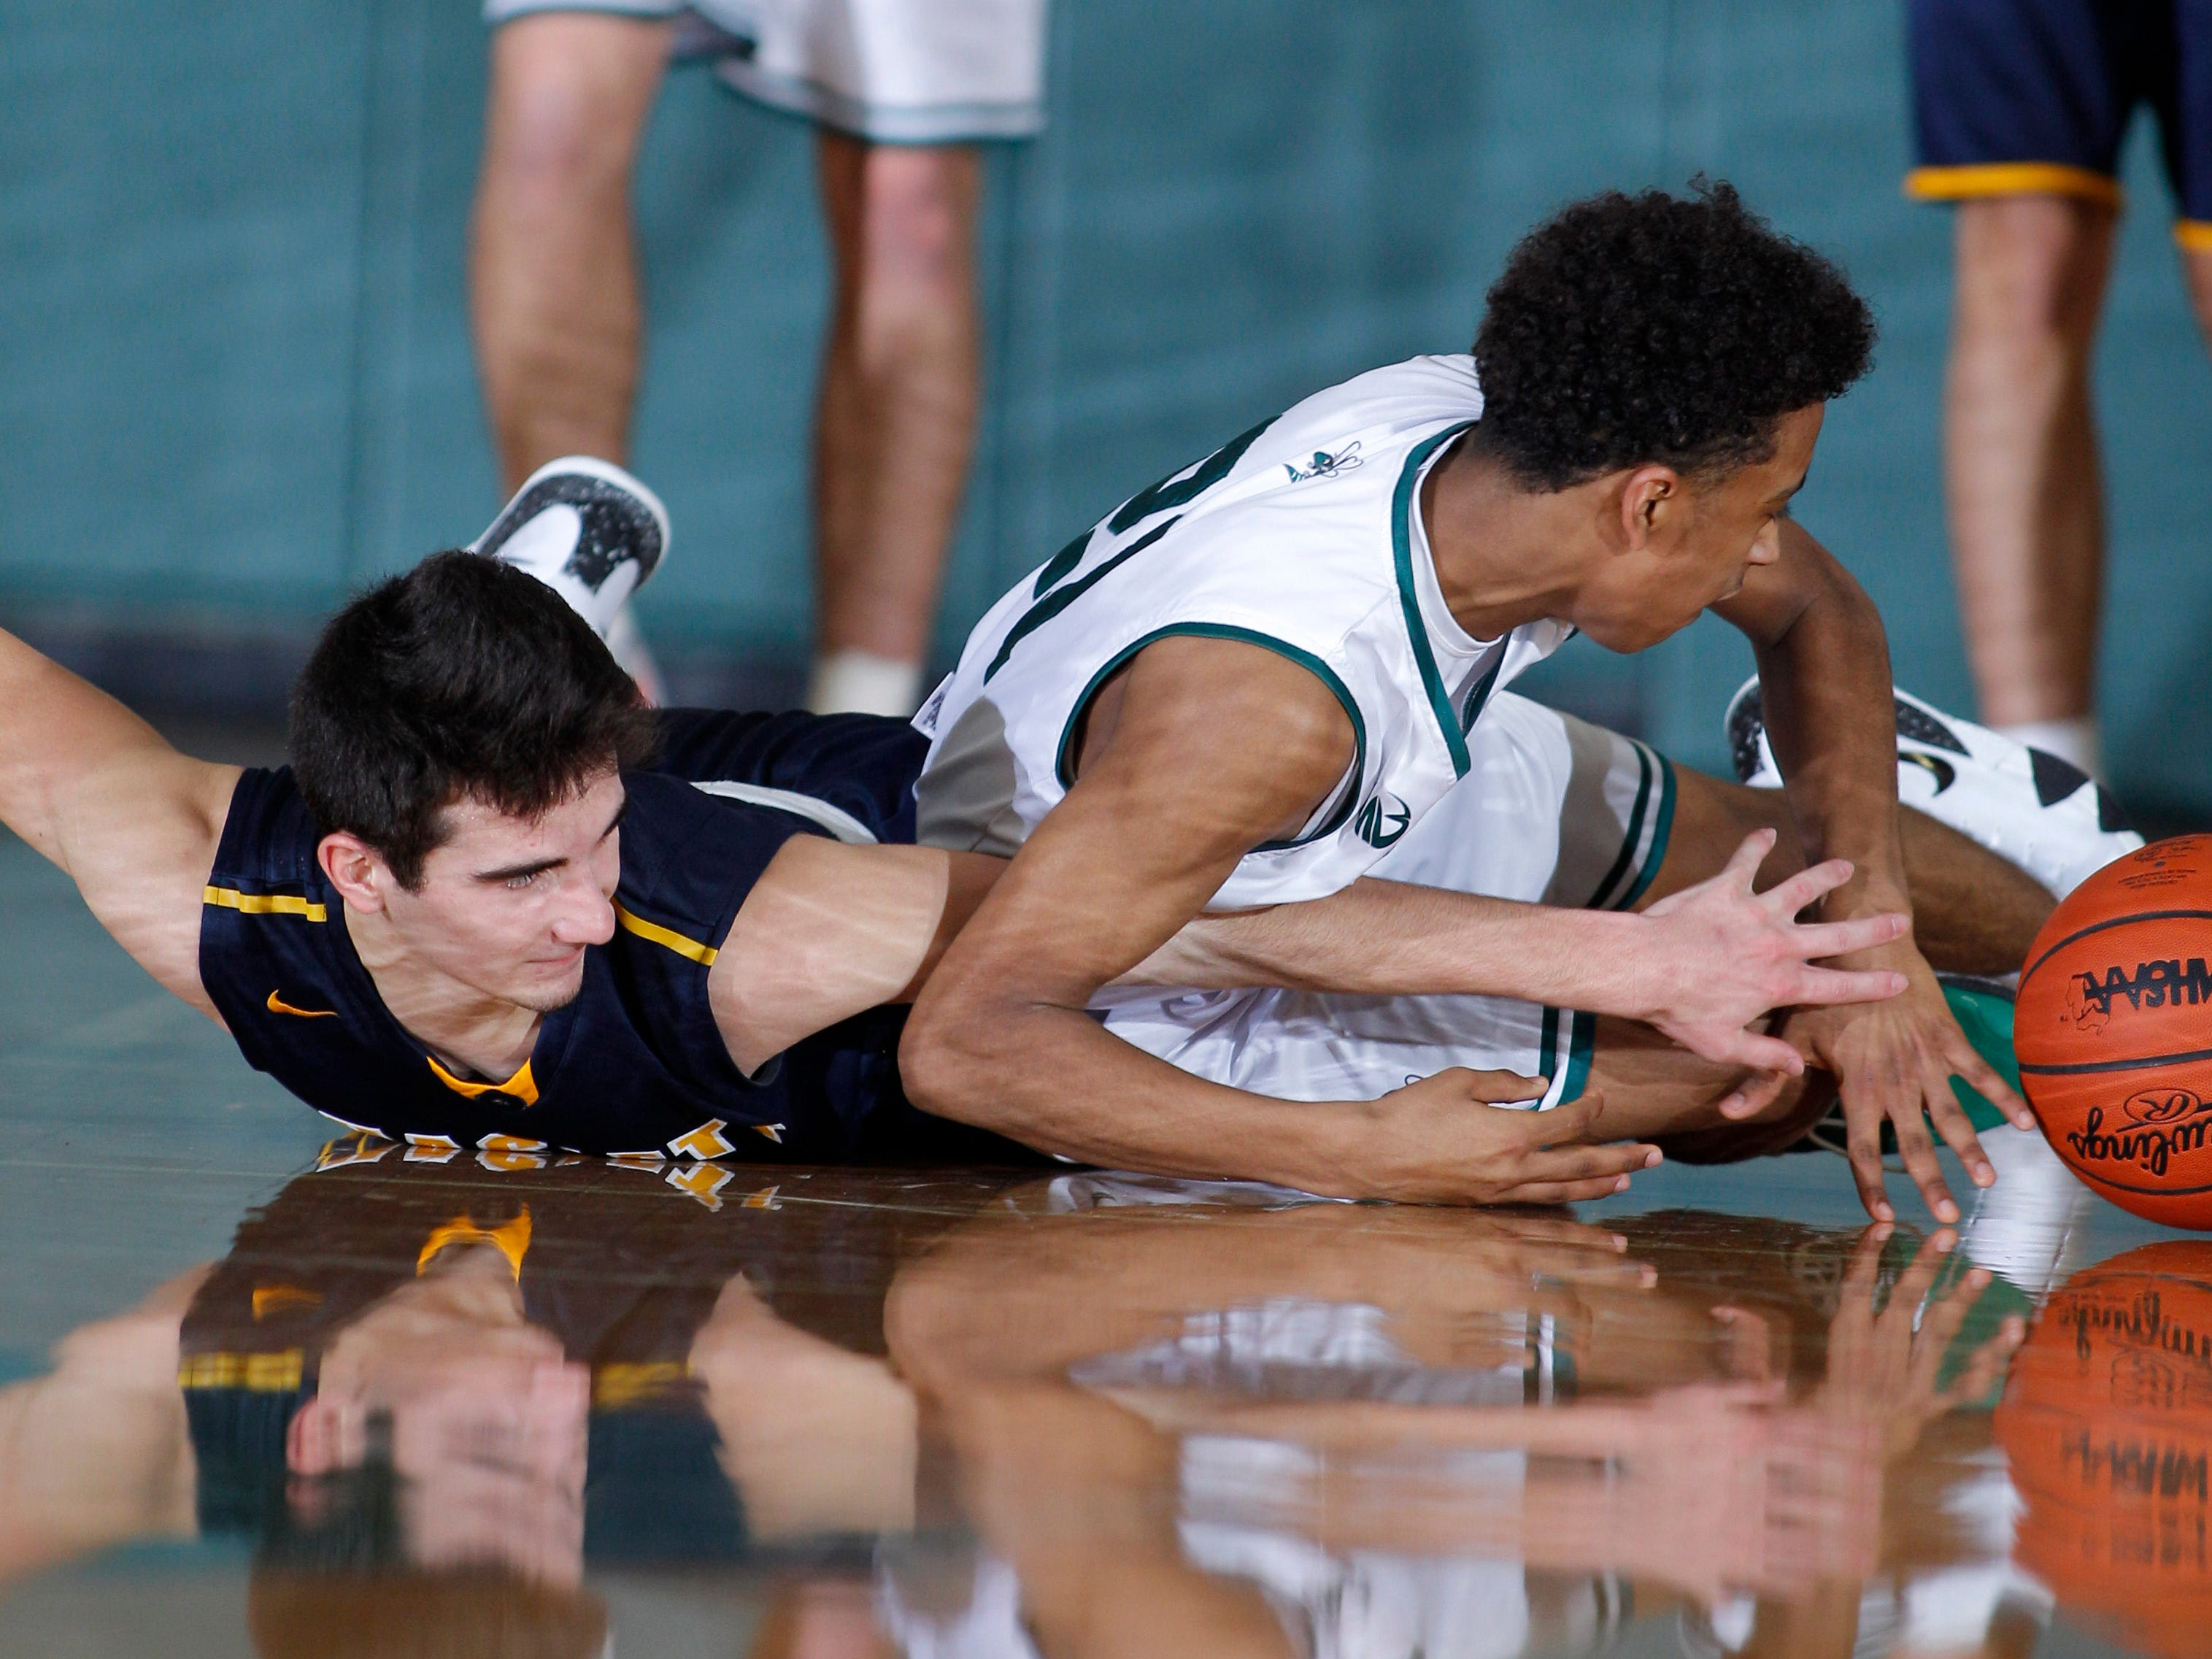 Williamston's Mason Docks, right, and Haslett's Mitchell Mowid battle for the ball, Friday, Jan. 11, 2019, in Williamston, Mich.